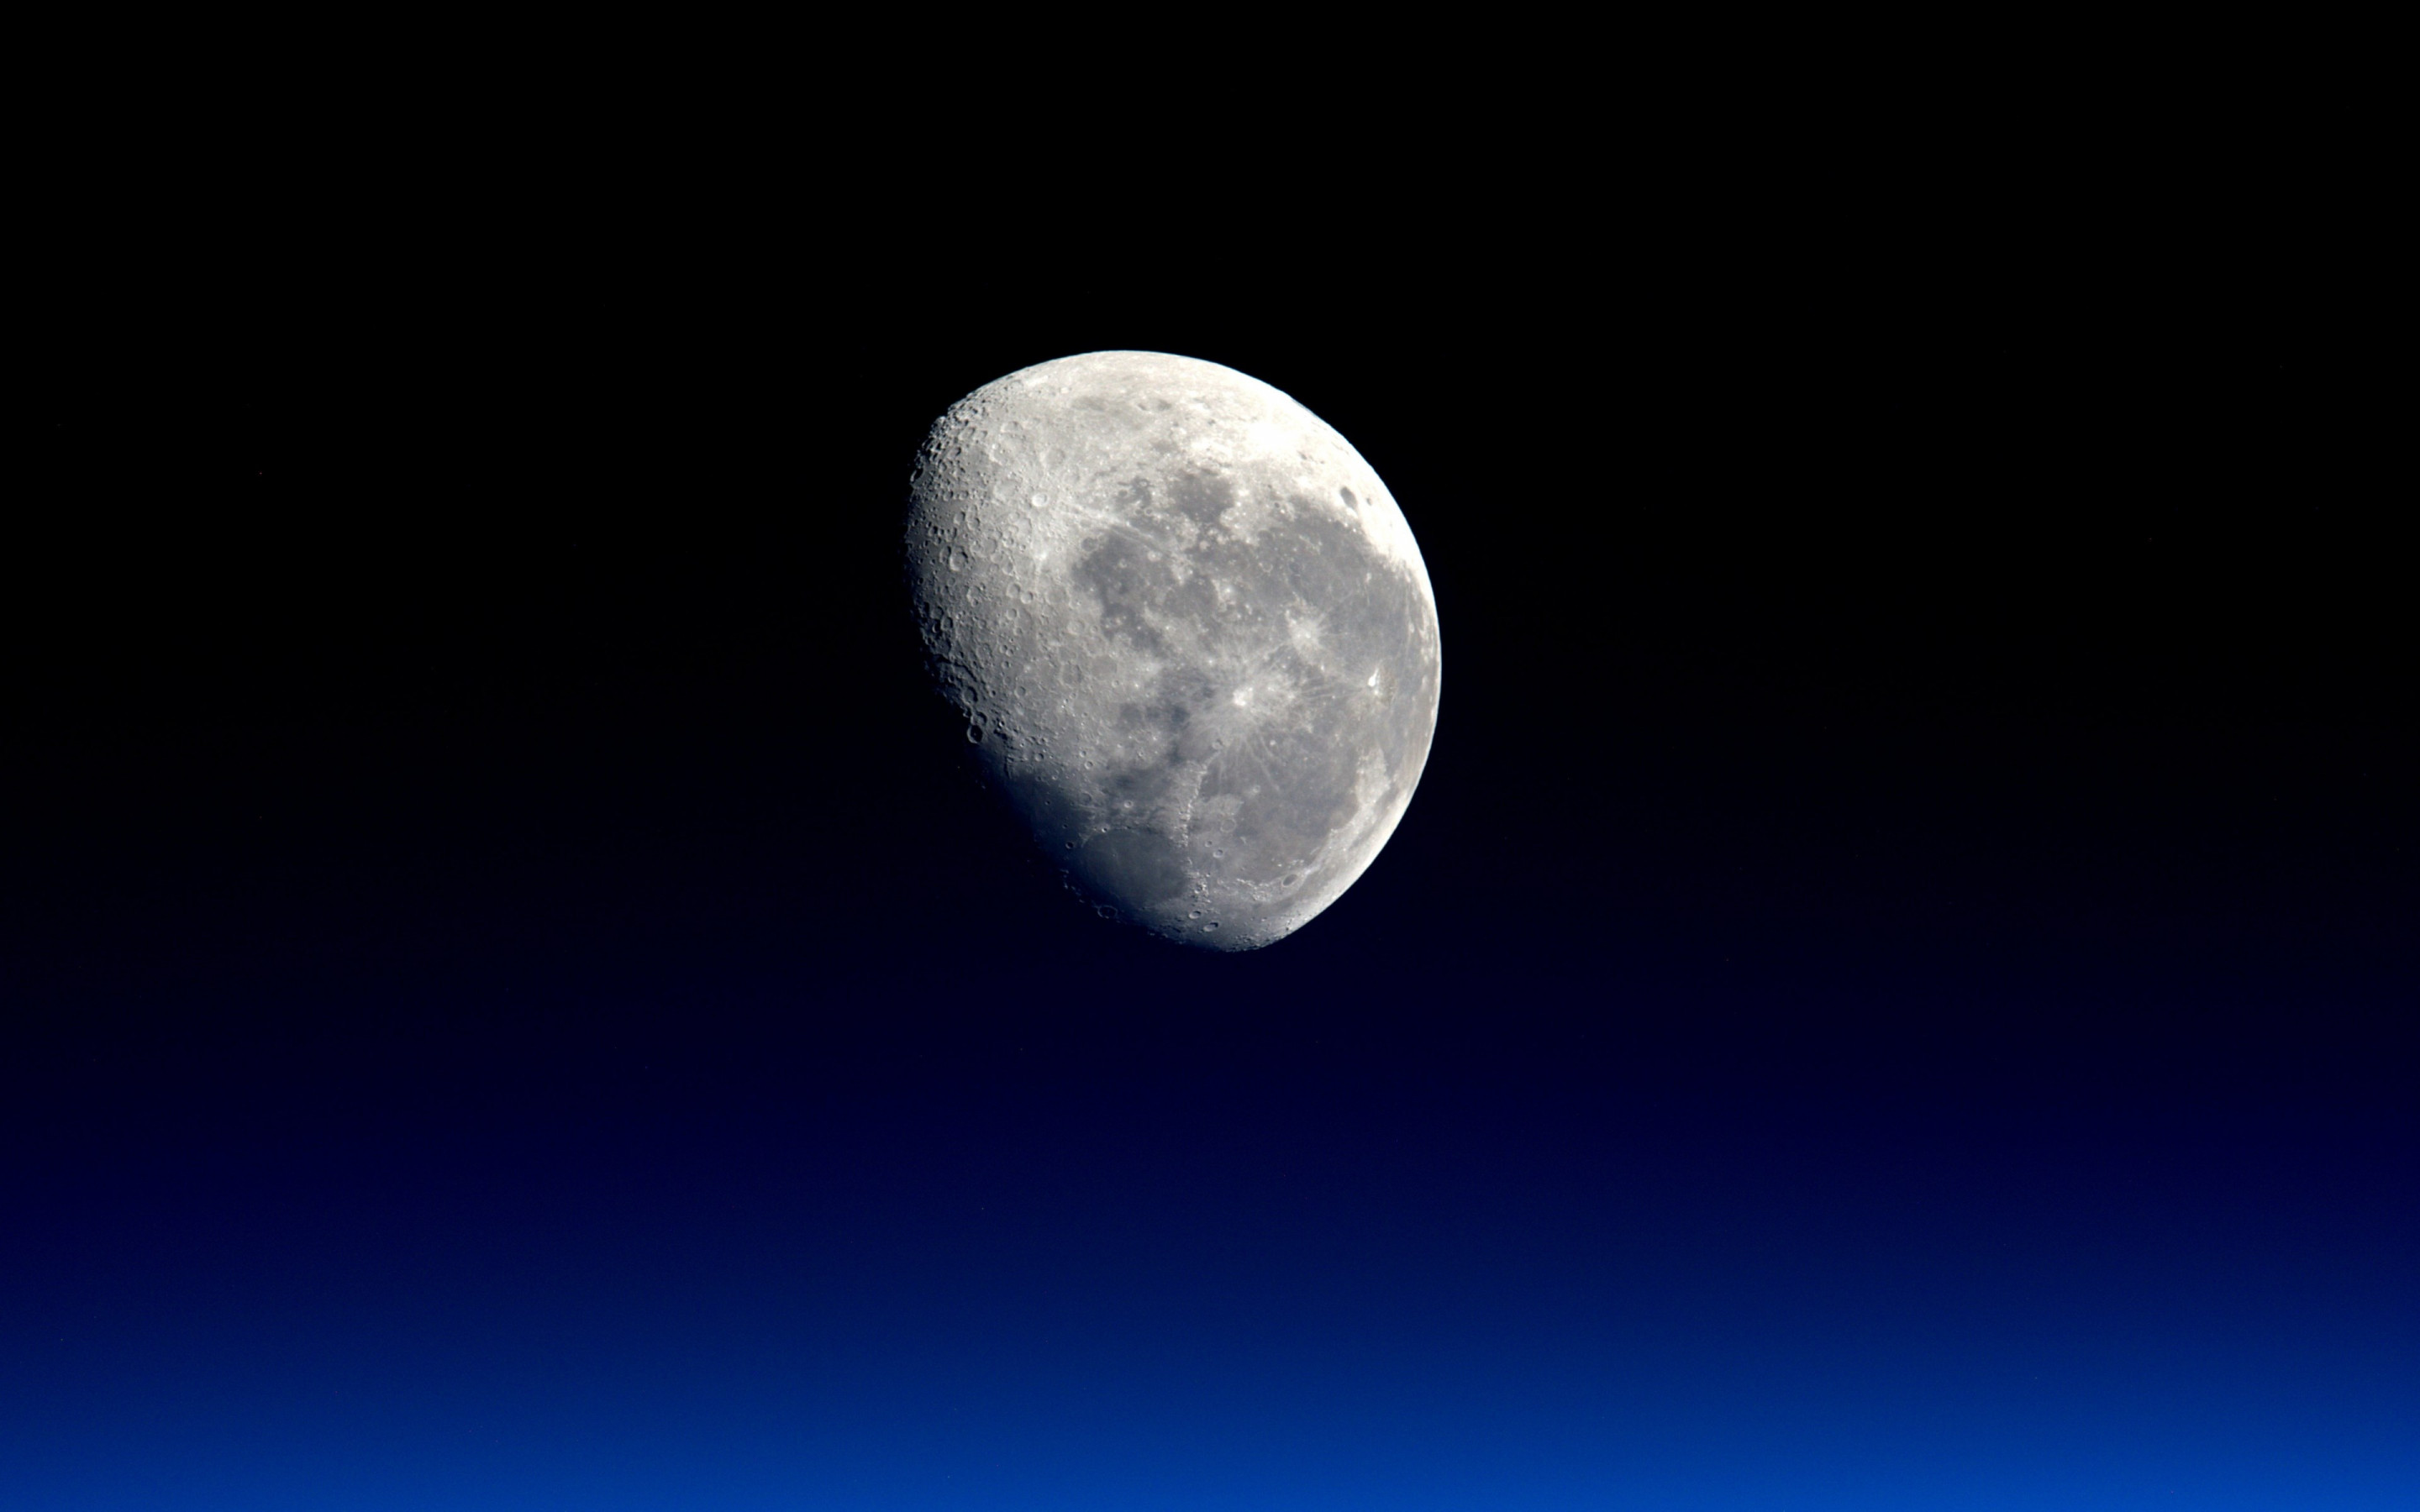 Our natural satellite: The Moon wallpaper 2880x1800